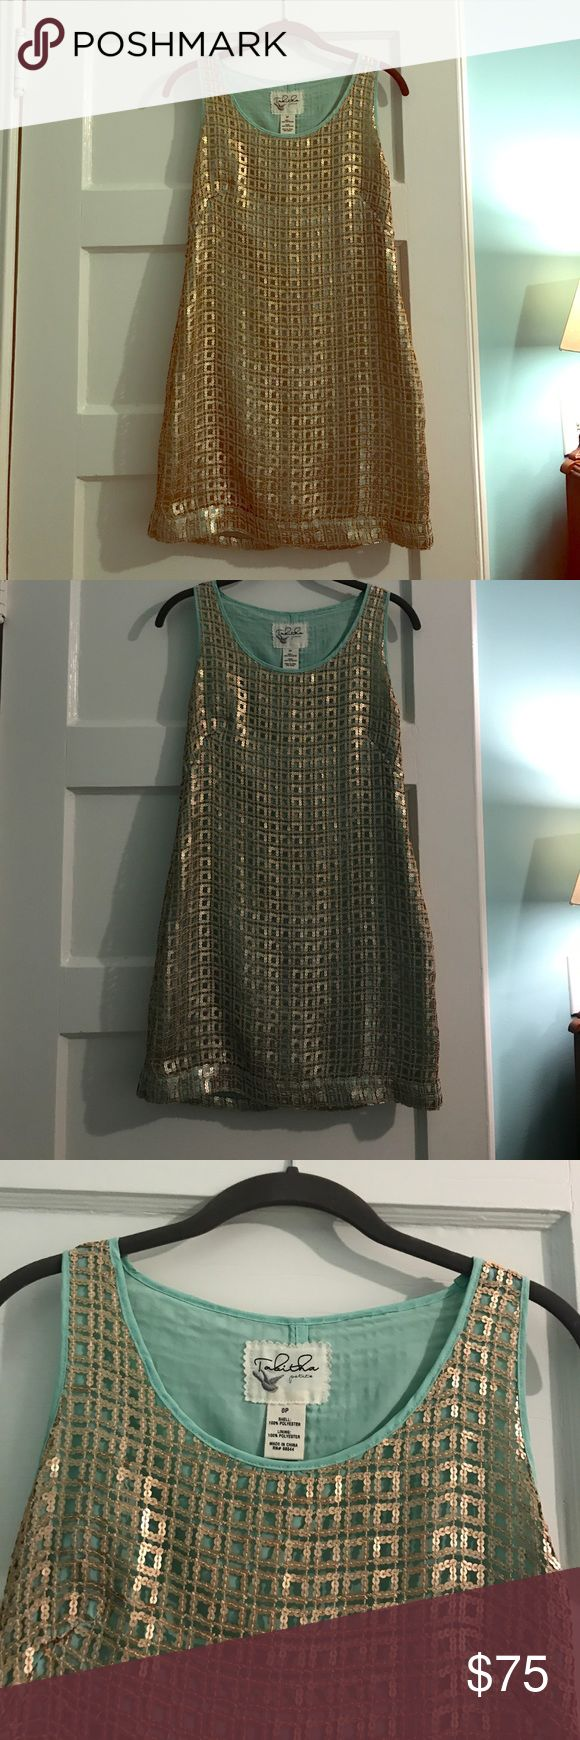 Turquoise and gold anthropology dress Turquoise and gold anthropology dress. GREAT condition and super cute!!!! Gold sequins. Size 0P. Anthropologie Dresses Mini